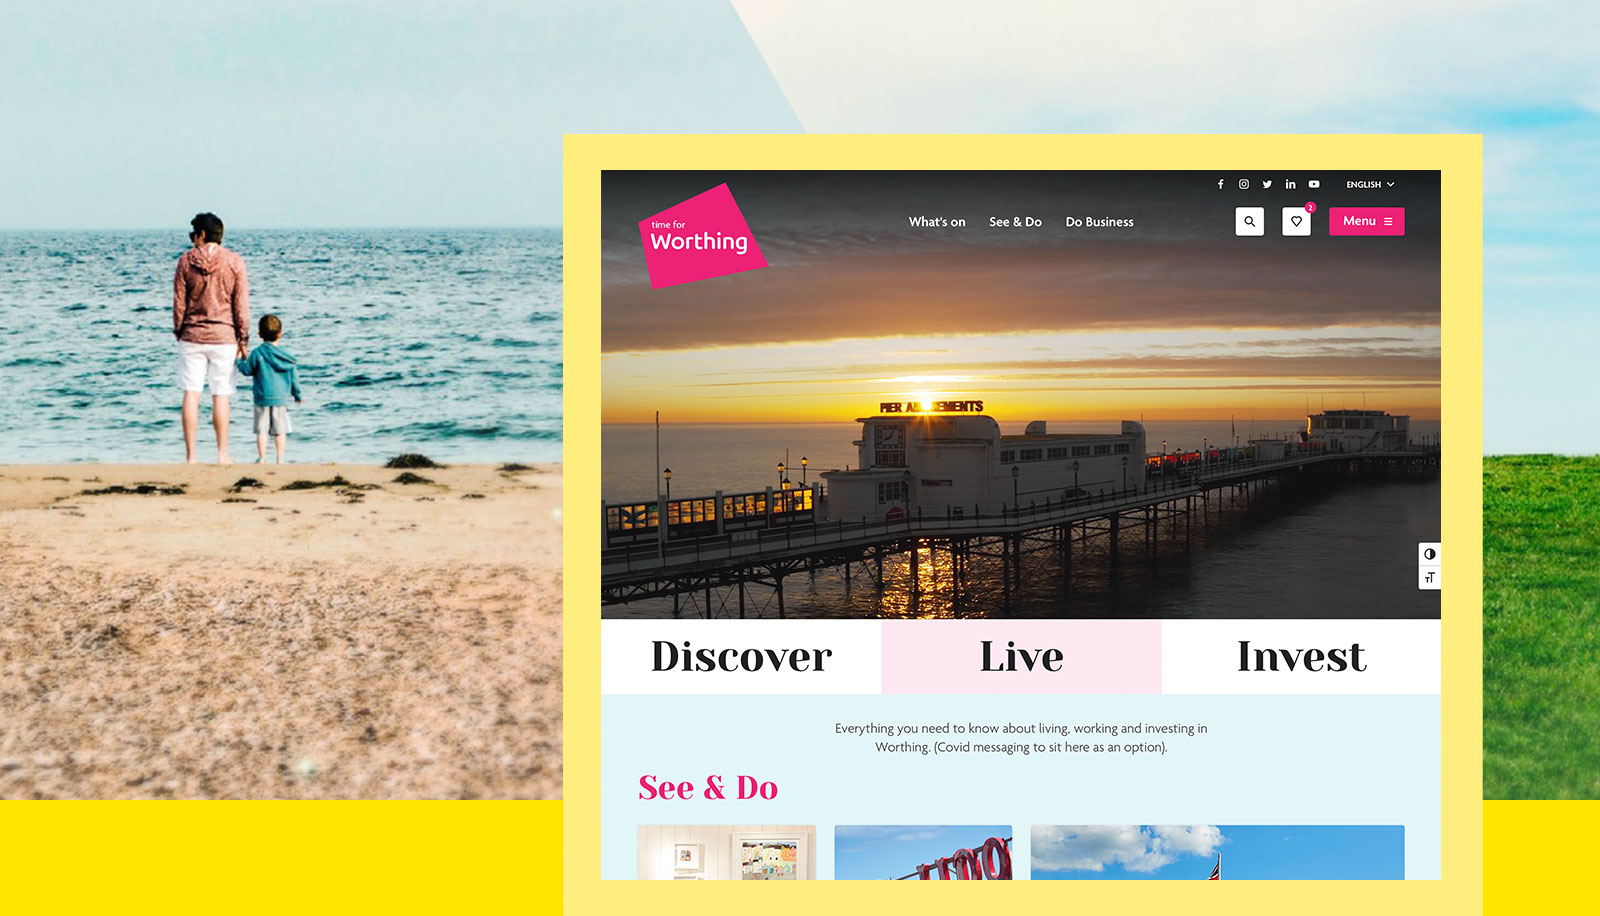 A screenshot of the Time for Worthing homepage superimposed on an image of a family on a beach from Worthing's place brand guidelines